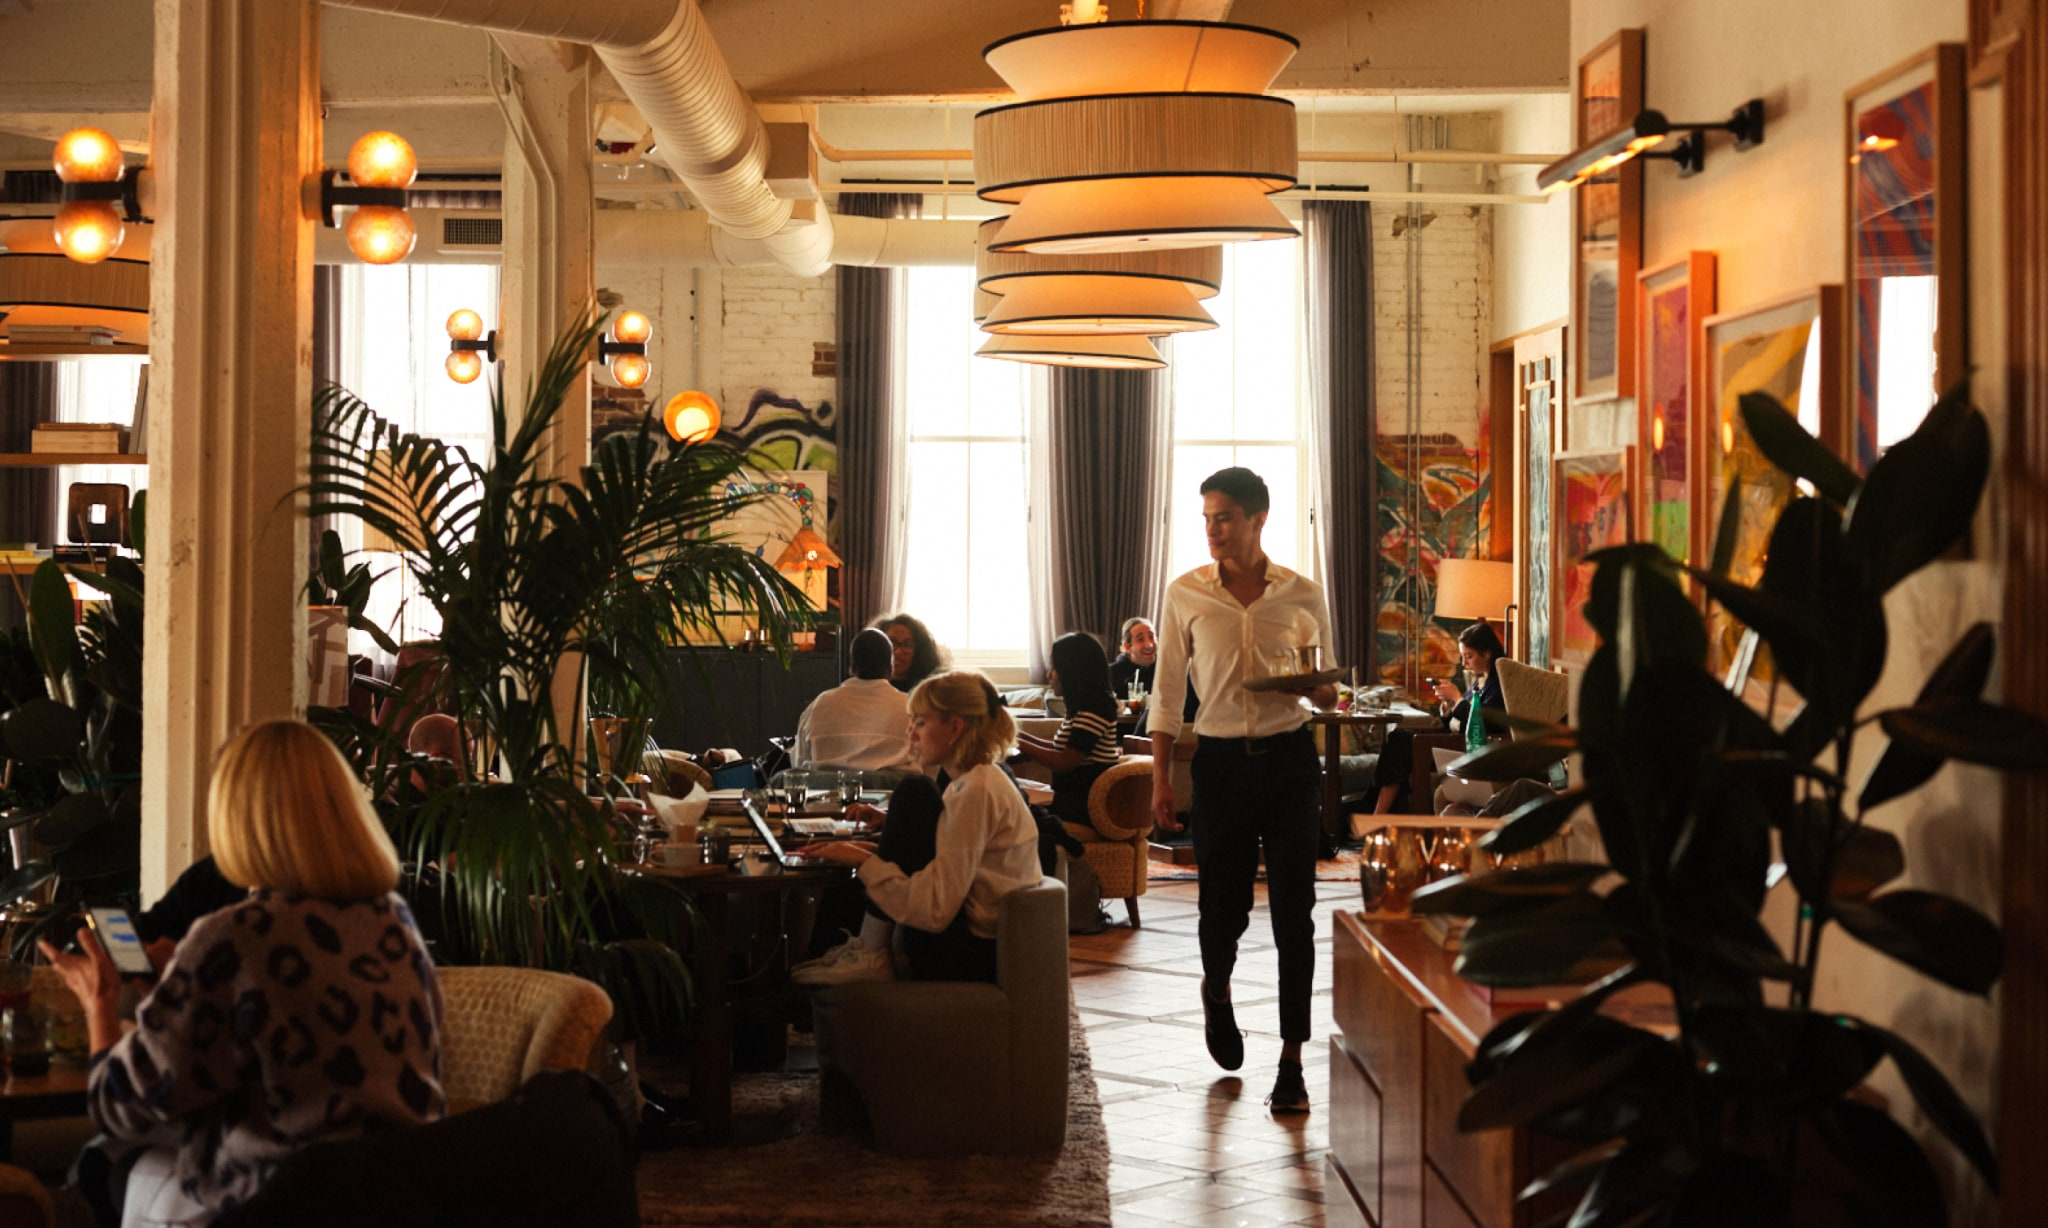 A waiter serving people in a relaxed dining area.